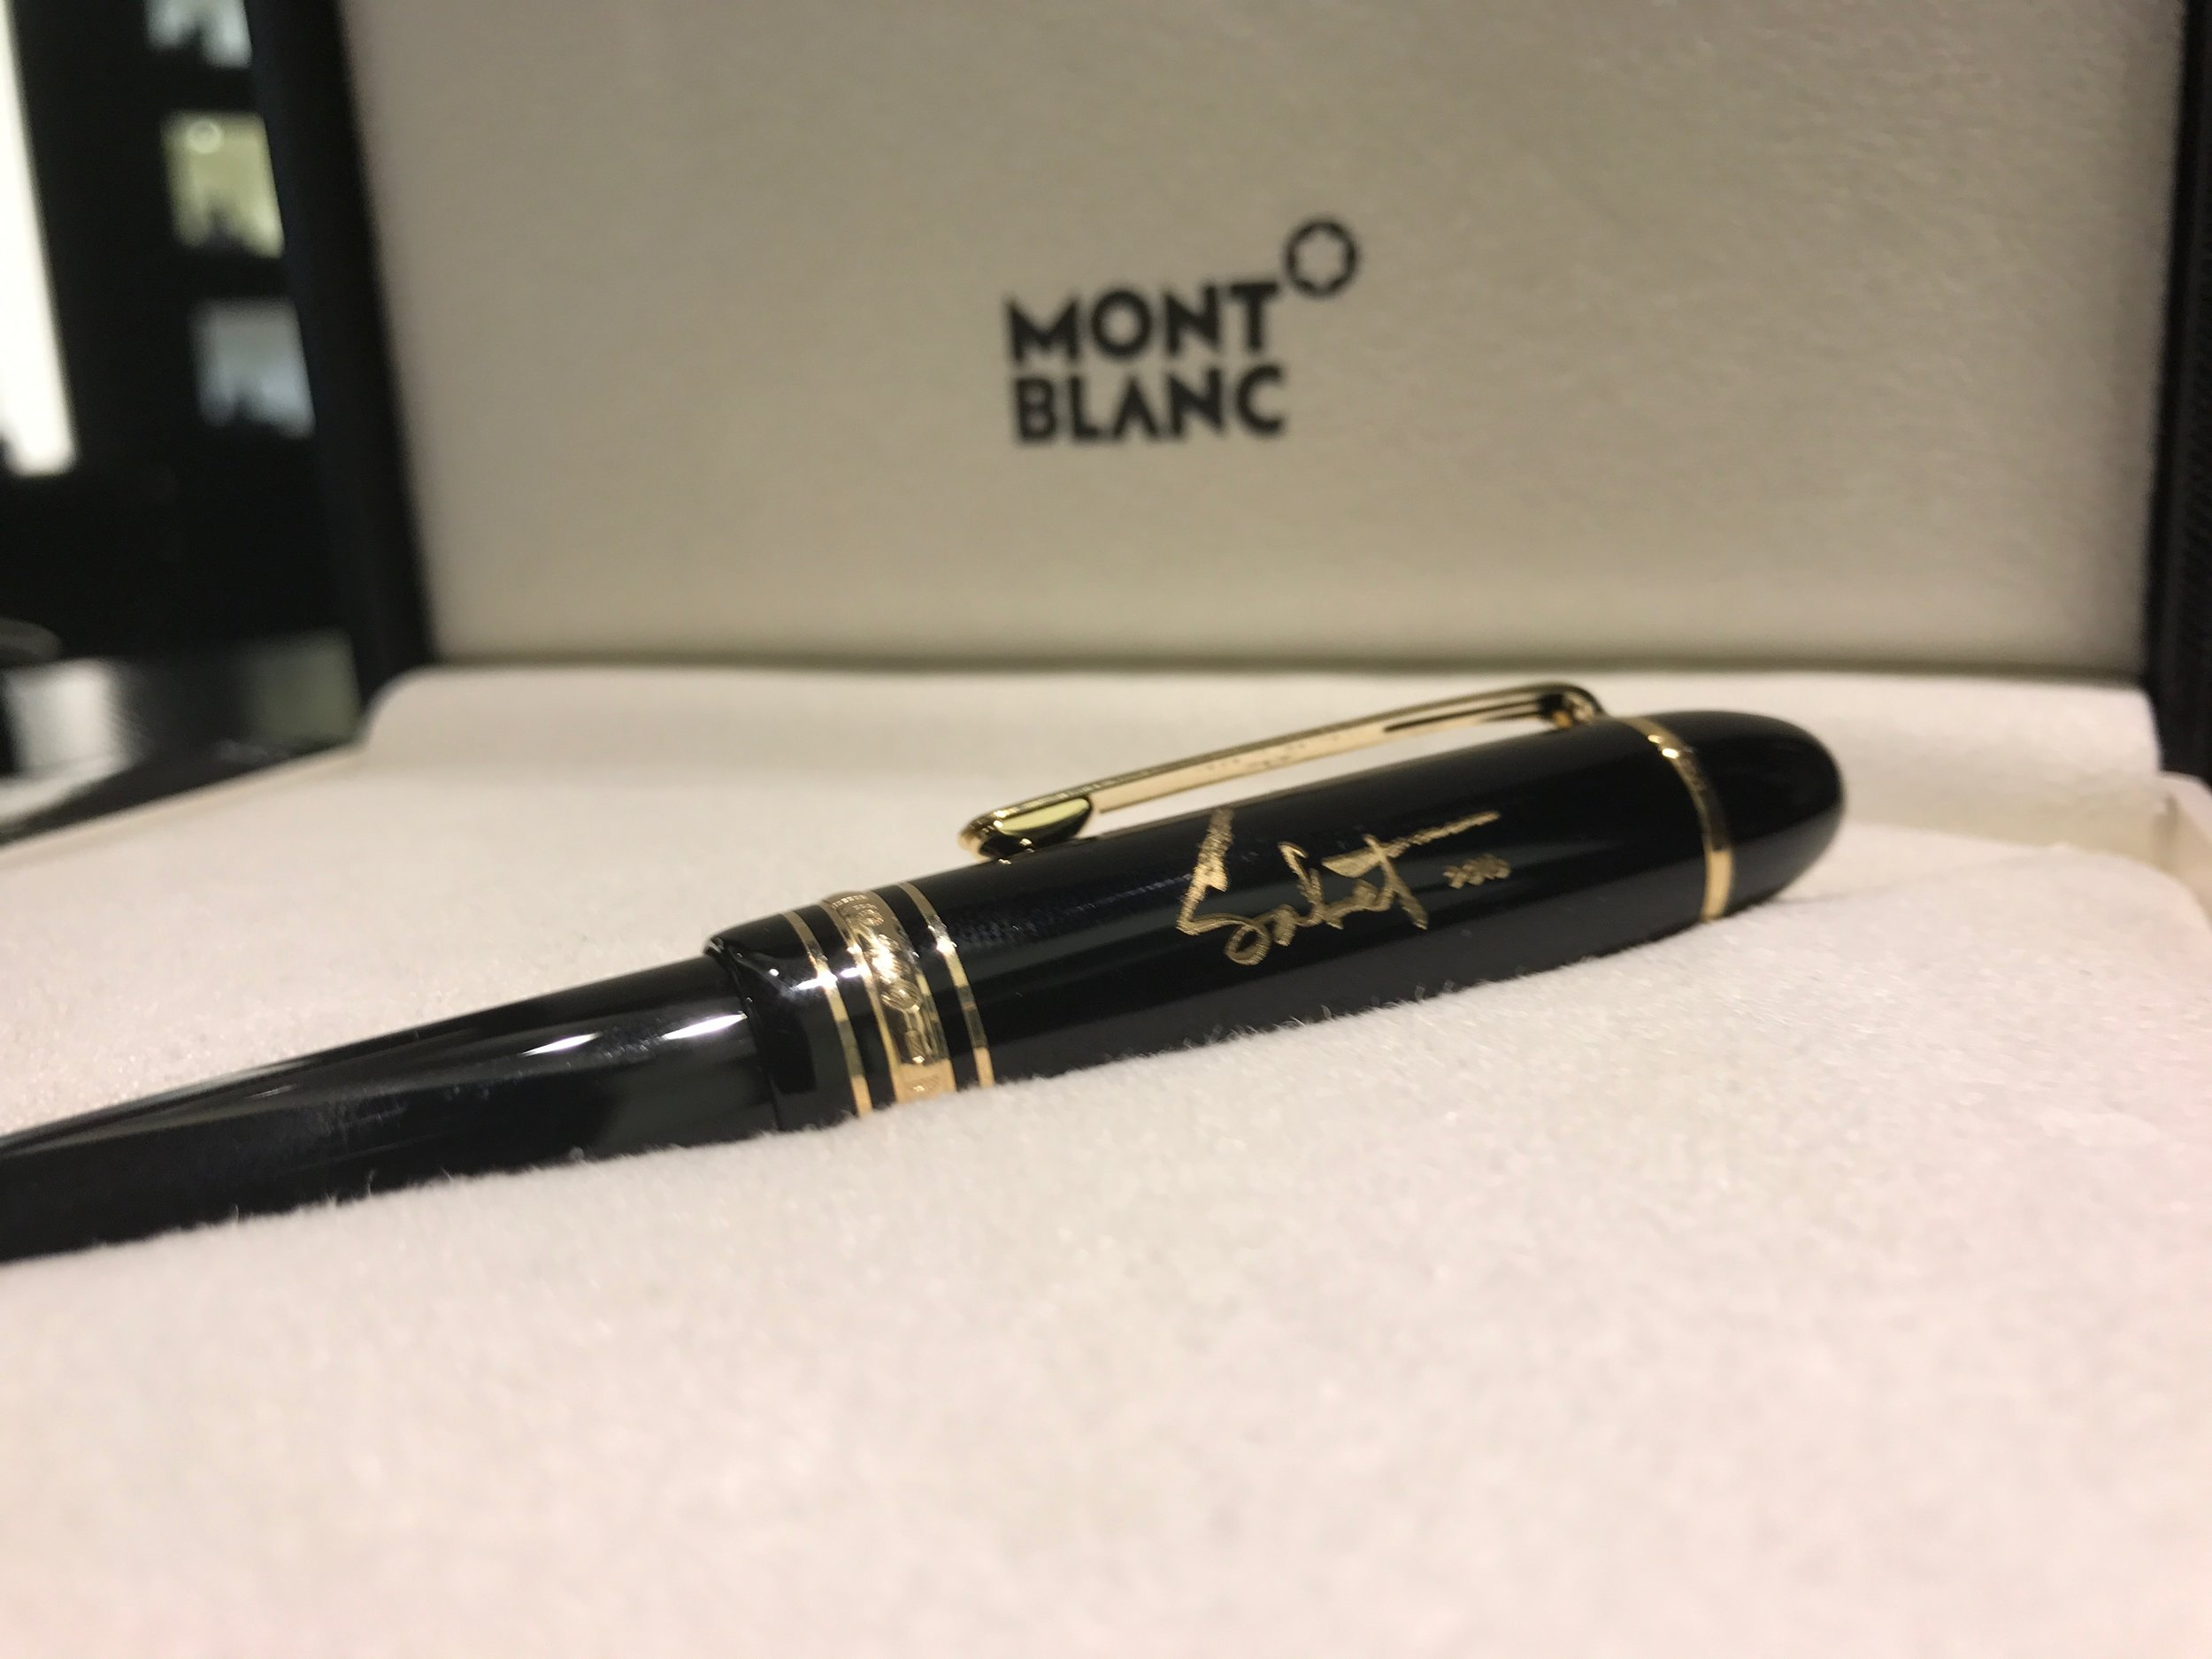 Available Now! 2016 Sabet Signature Montblanc Meisterstück Gold-Coated Classique Fountain Pen